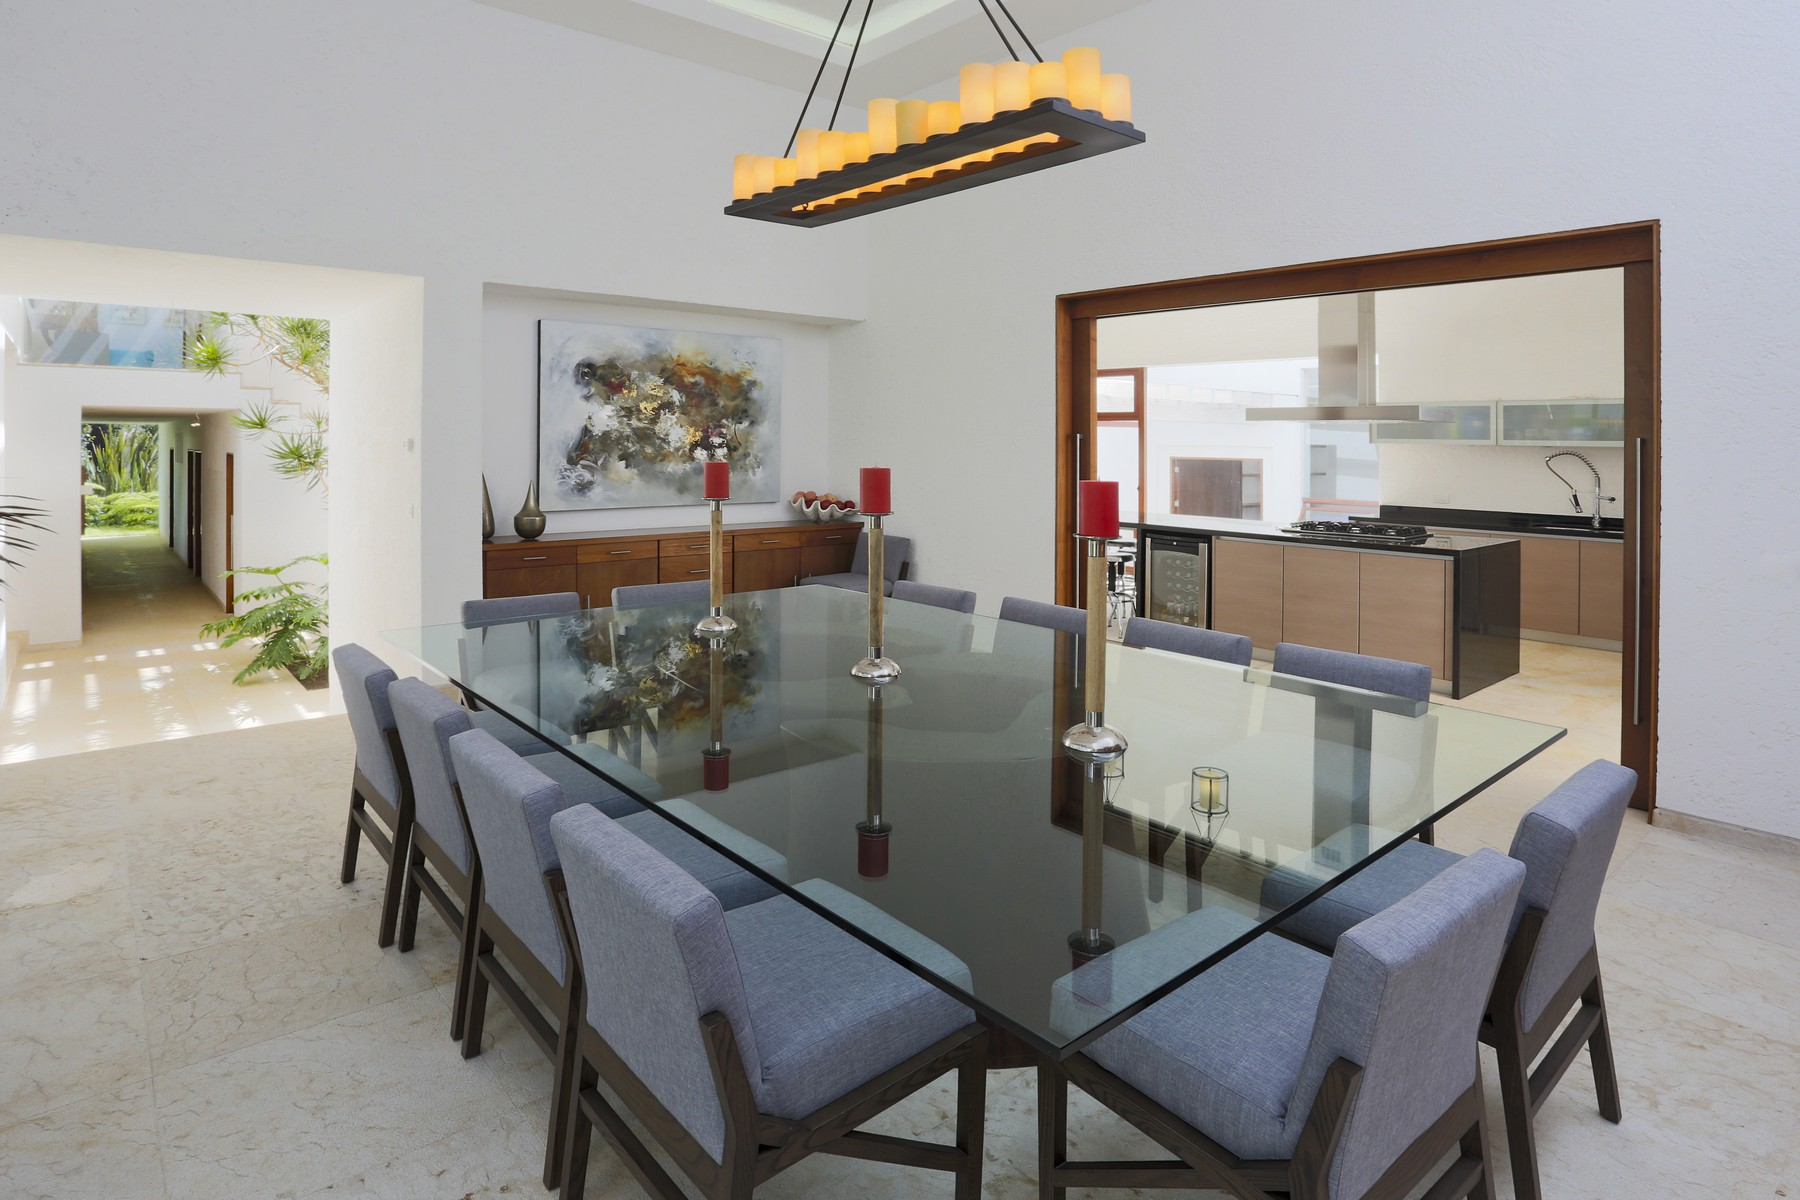 Additional photo for property listing at Avandaro Residence at Valle de Bravo  Federal District, Mexico Df 51200 Mexico